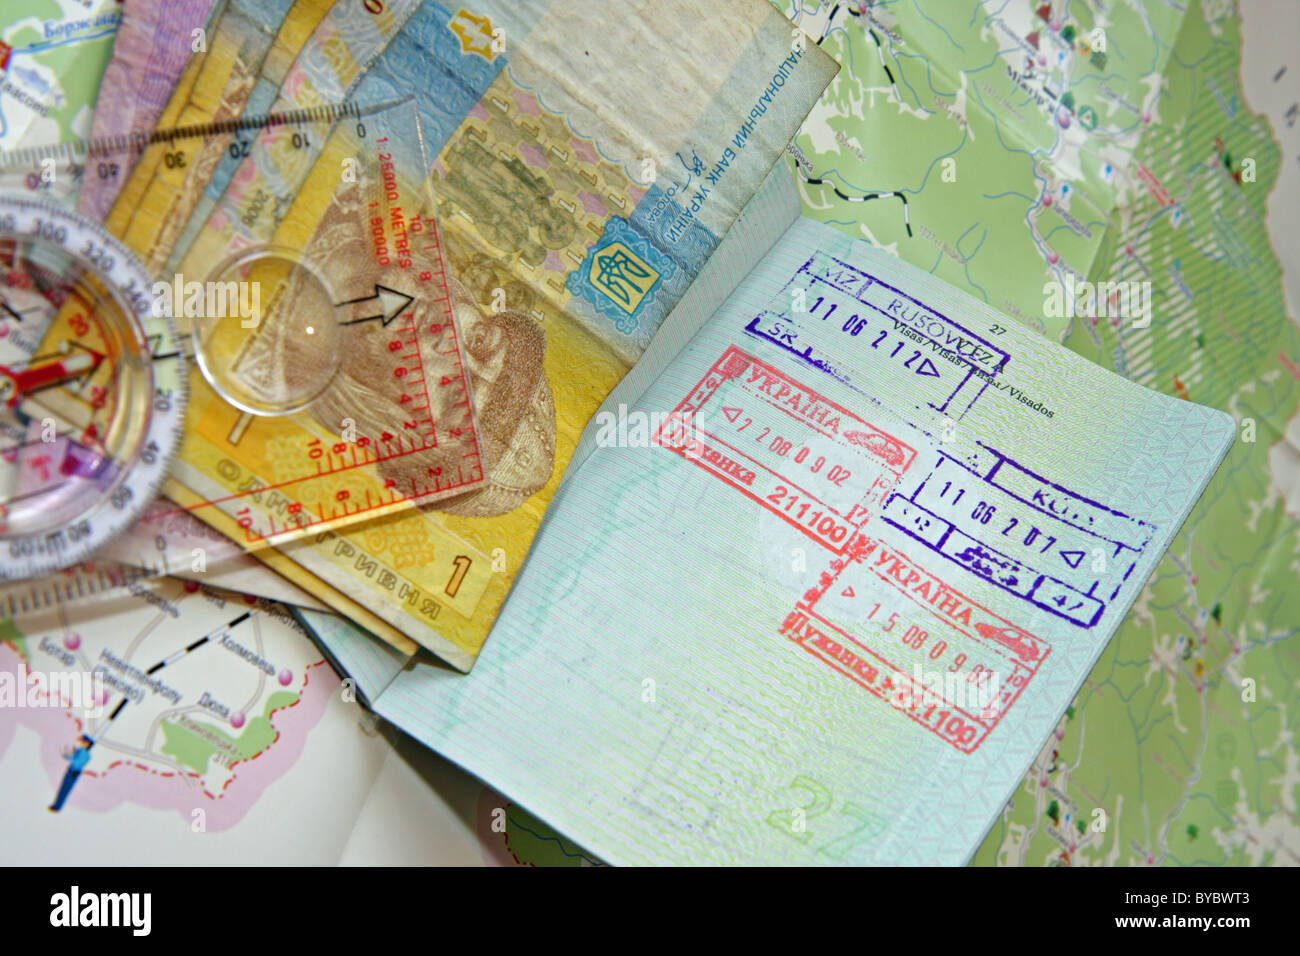 Passport with Ukrainian stamp, banknotes and compass on a map od Ukraine - Stock Image